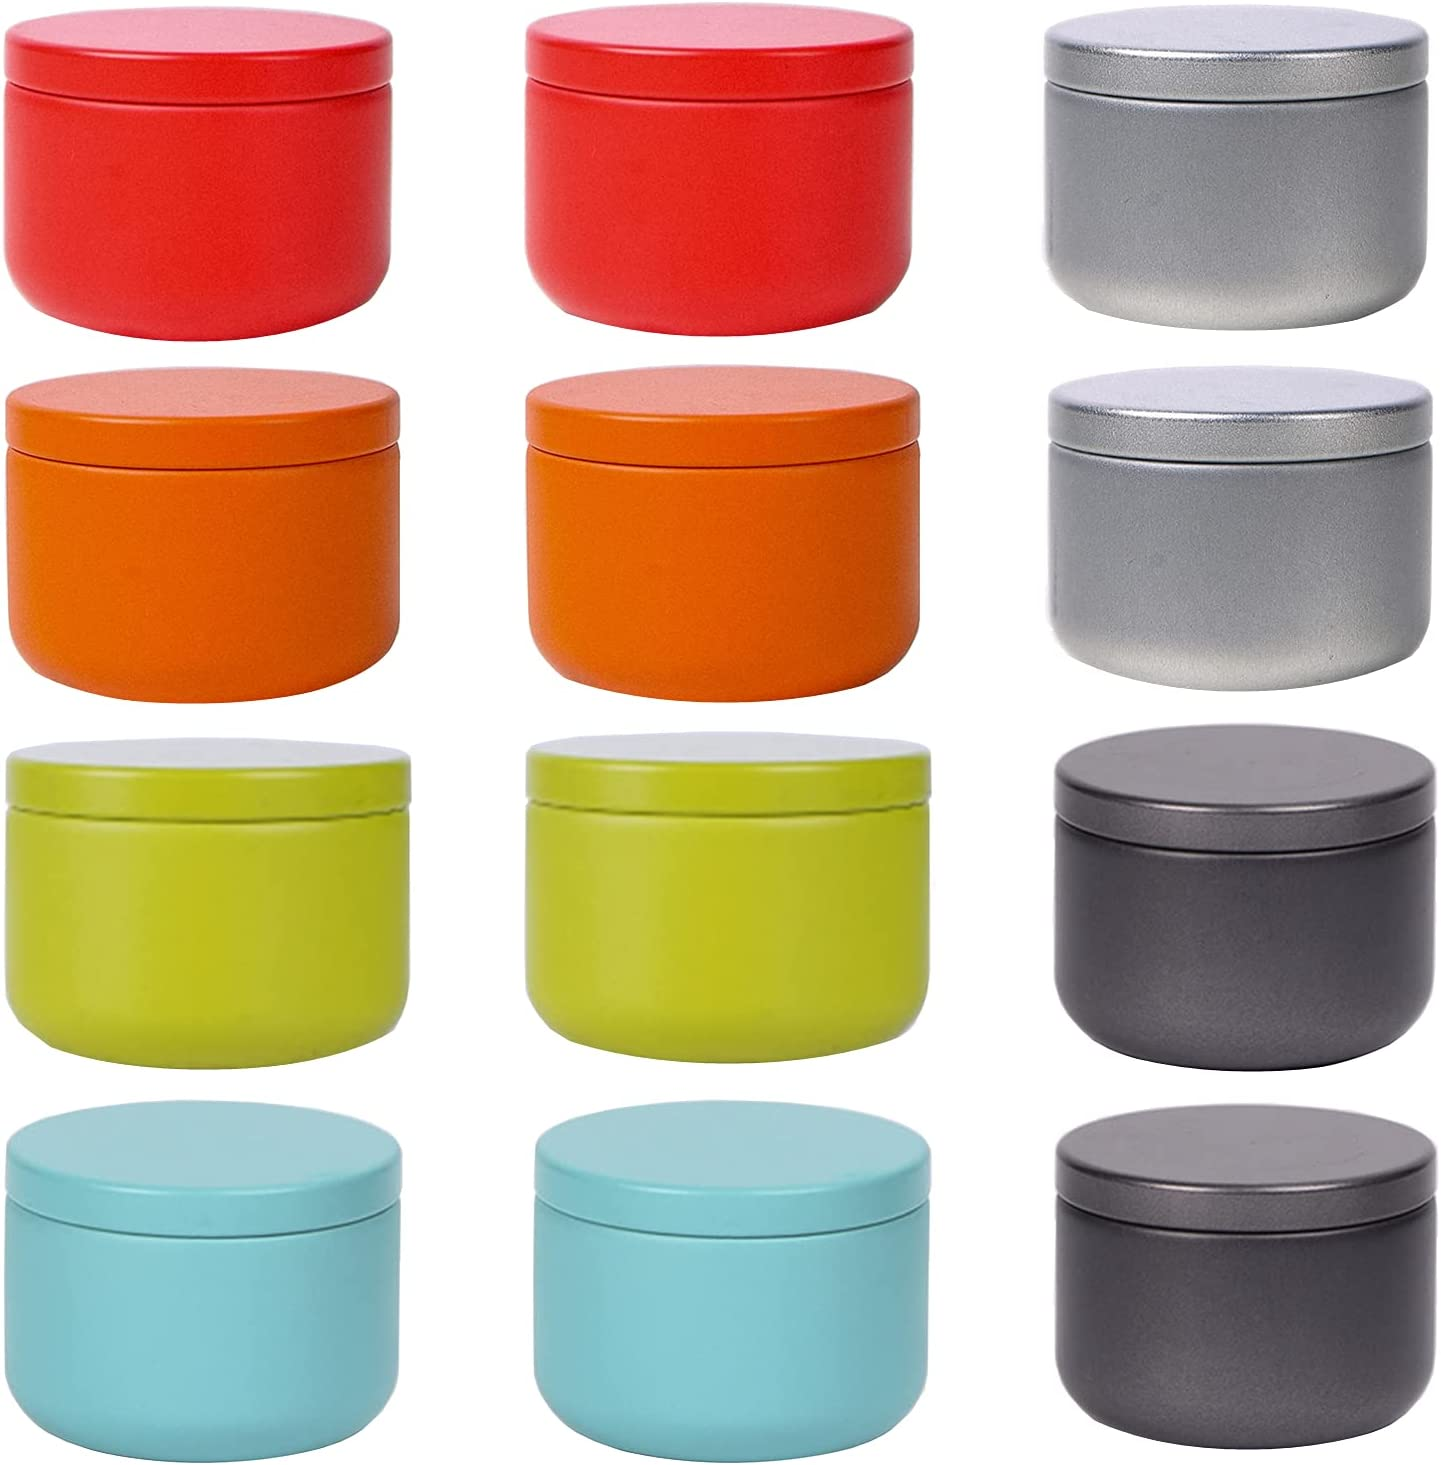 LONG XIN SERIES 12 Pcs 2.1x1.6 Inches Round Tin Jar Tea Tins Food Storage Container for Loose tea, Coffee, Candy, Spice, Gift and Crafts Mini Portable Storage Kit (Multicolor)